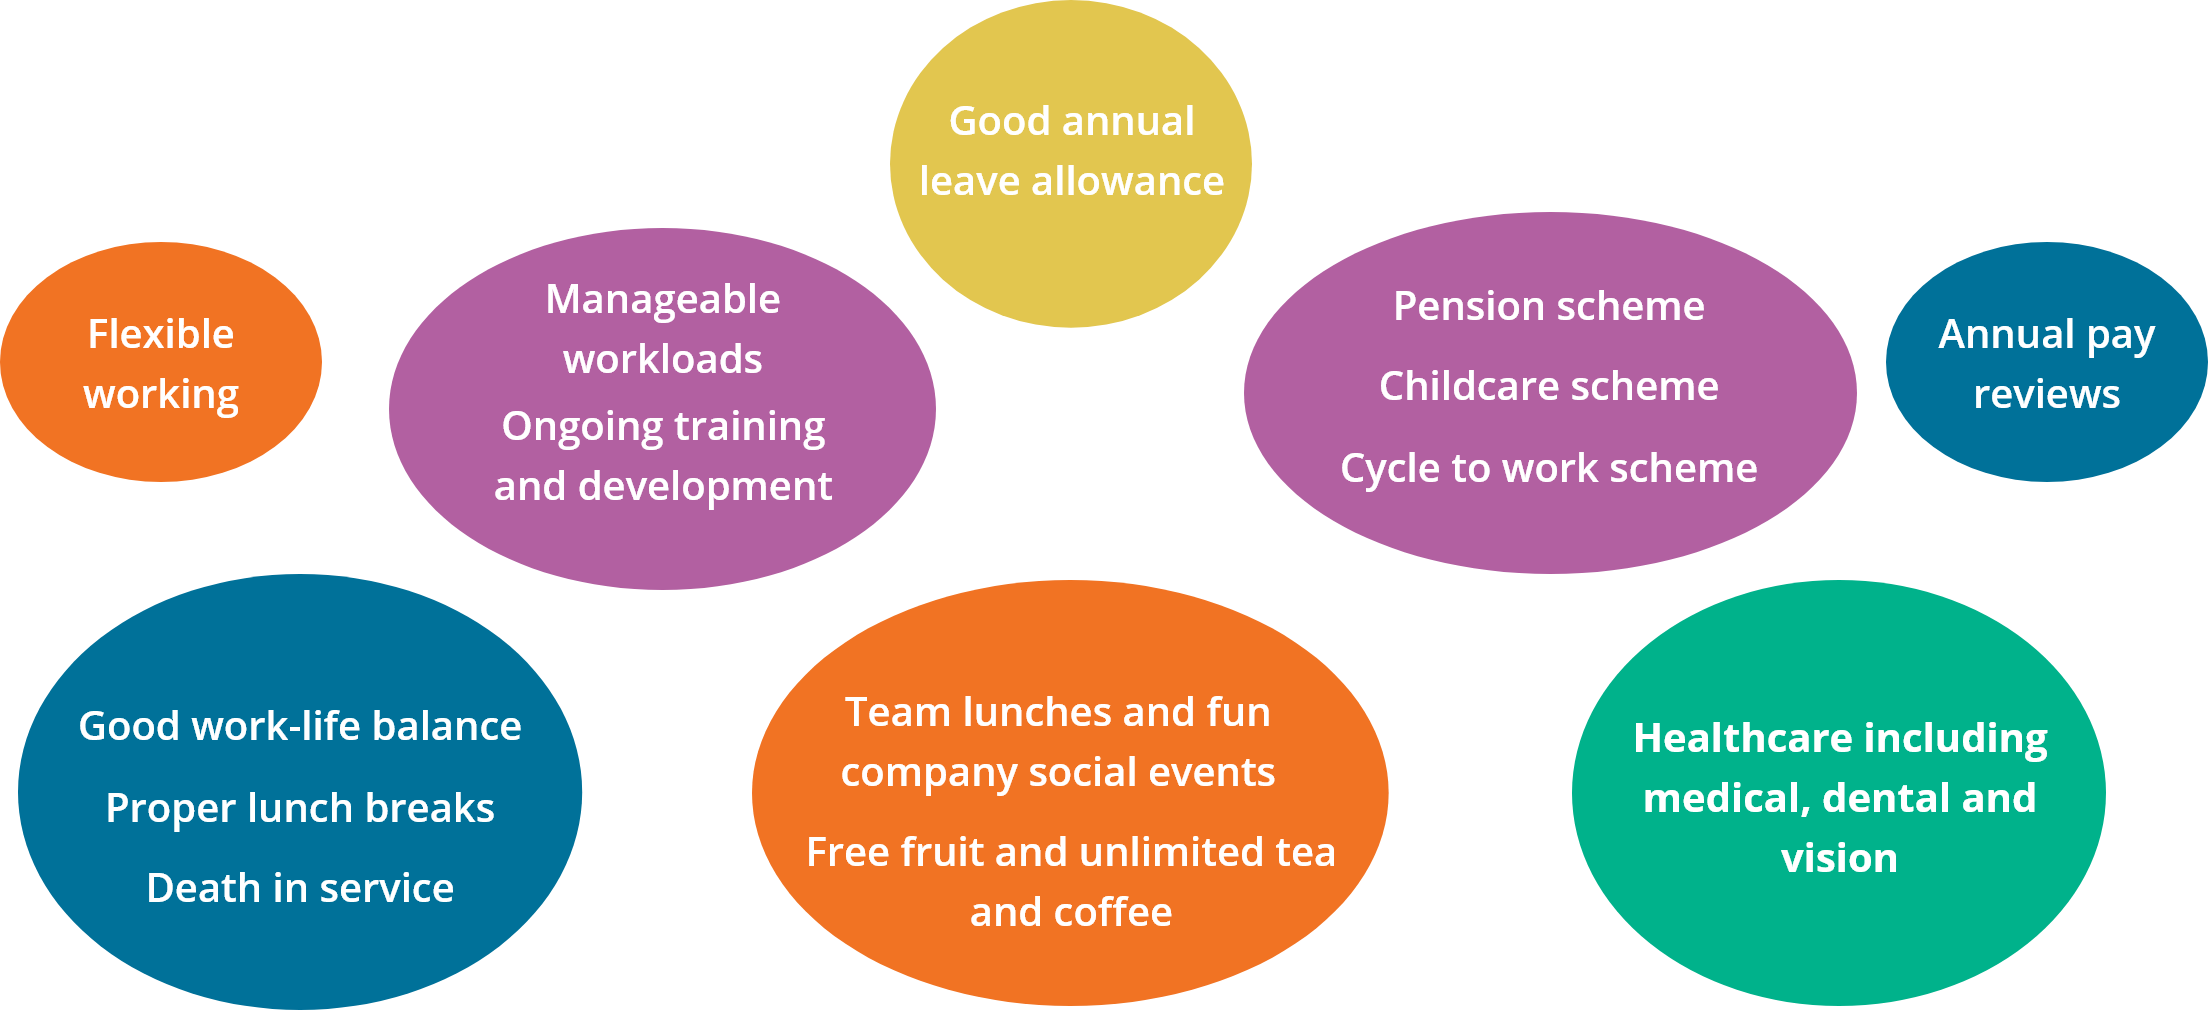 graphic banner describing benefits of working with Aurion.